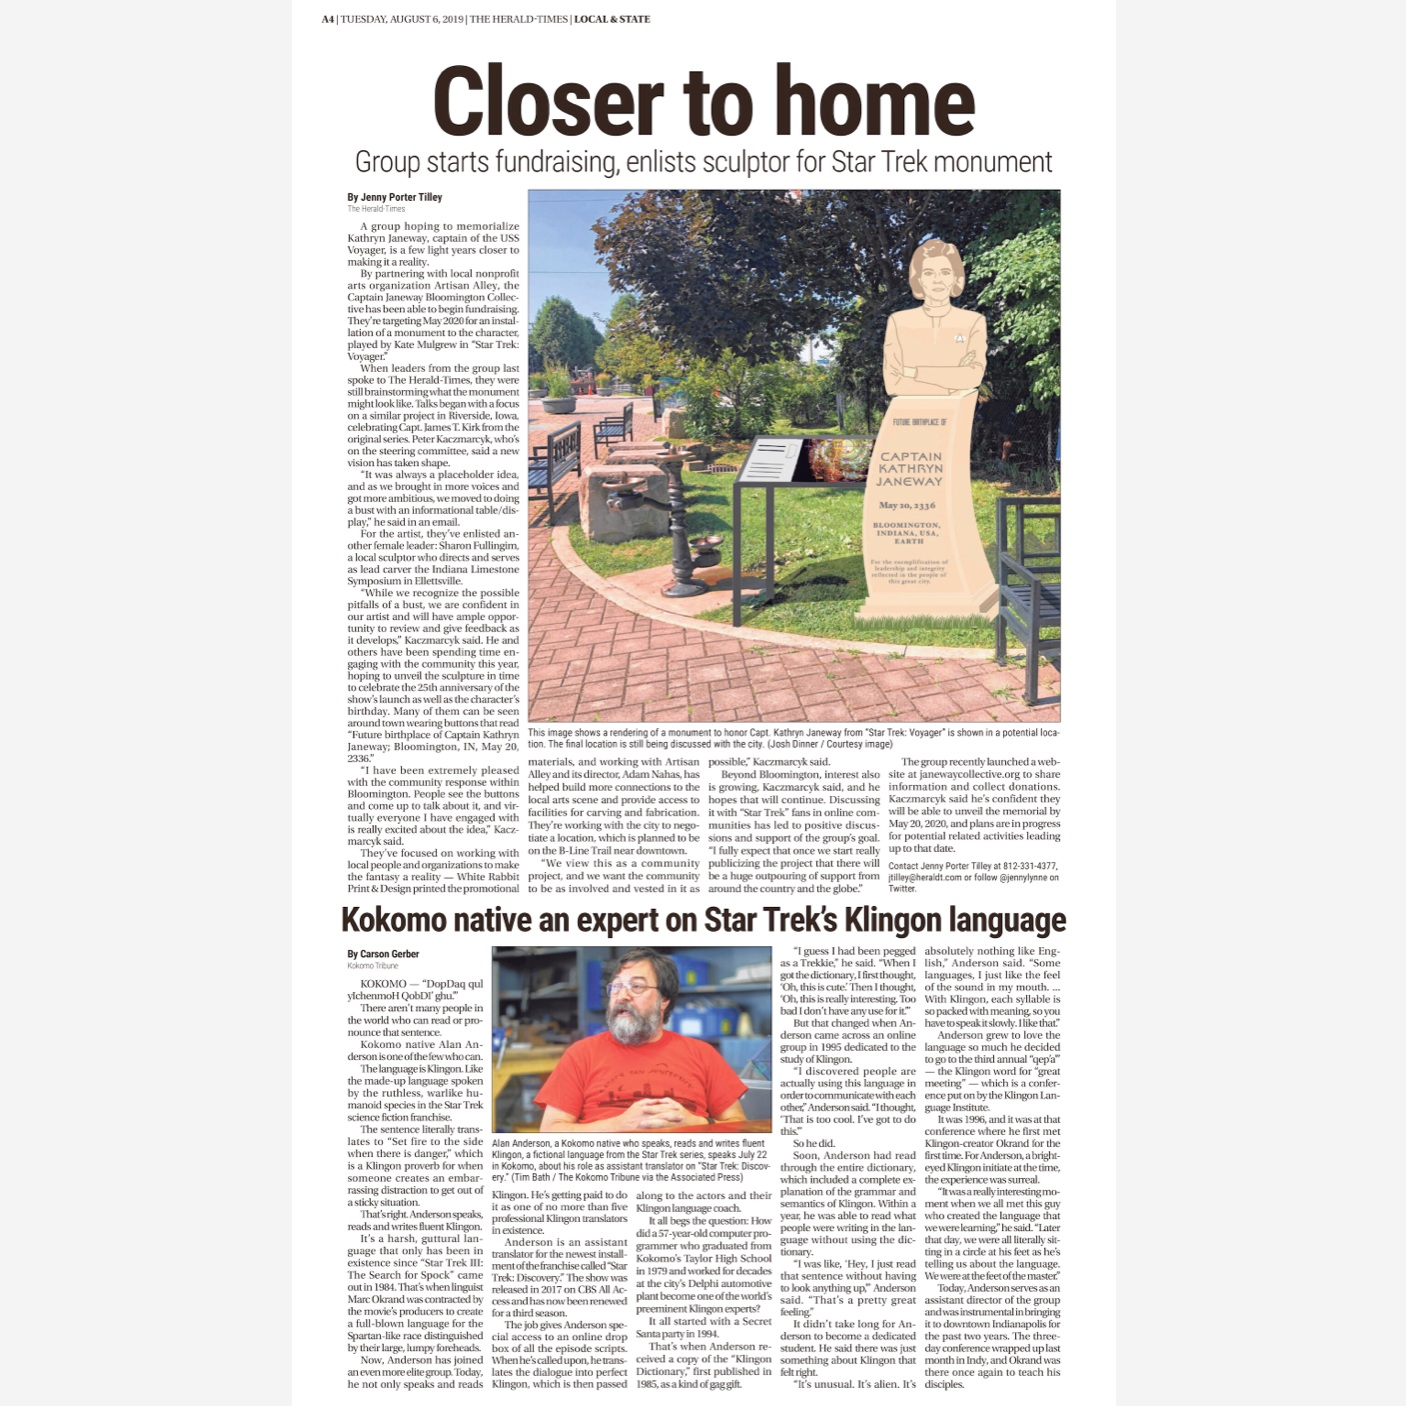 The Herald-Times devotes an entire page to Star Trek news… - August 6, 2019